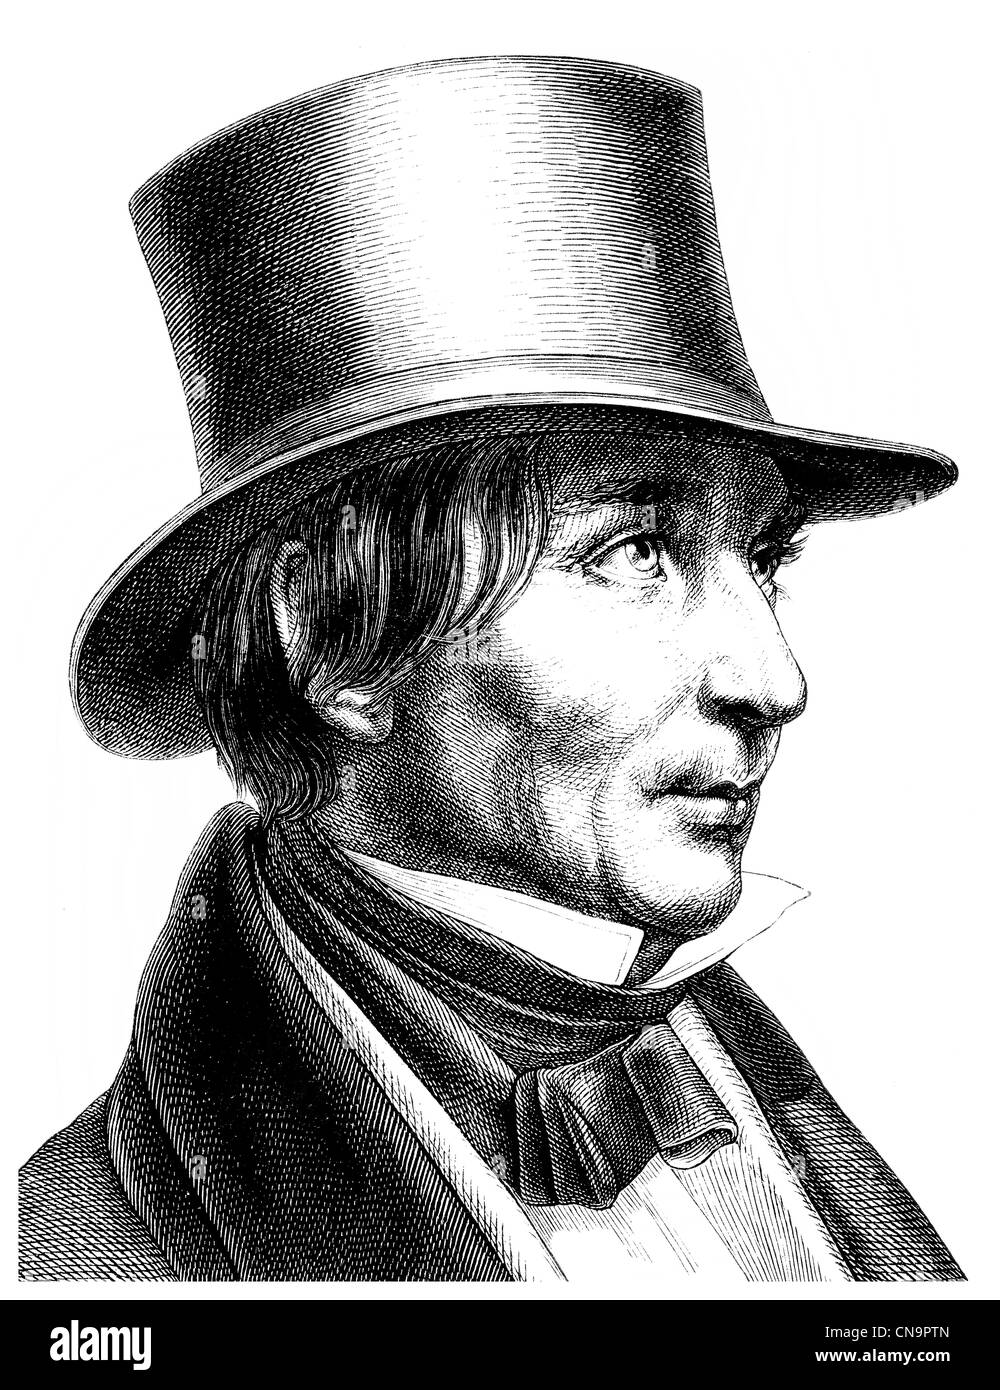 Historical drawing, Friedrich Carl von Savigny, 1779 - 1861, a German legal scholar and founder of the Historical - Stock Image